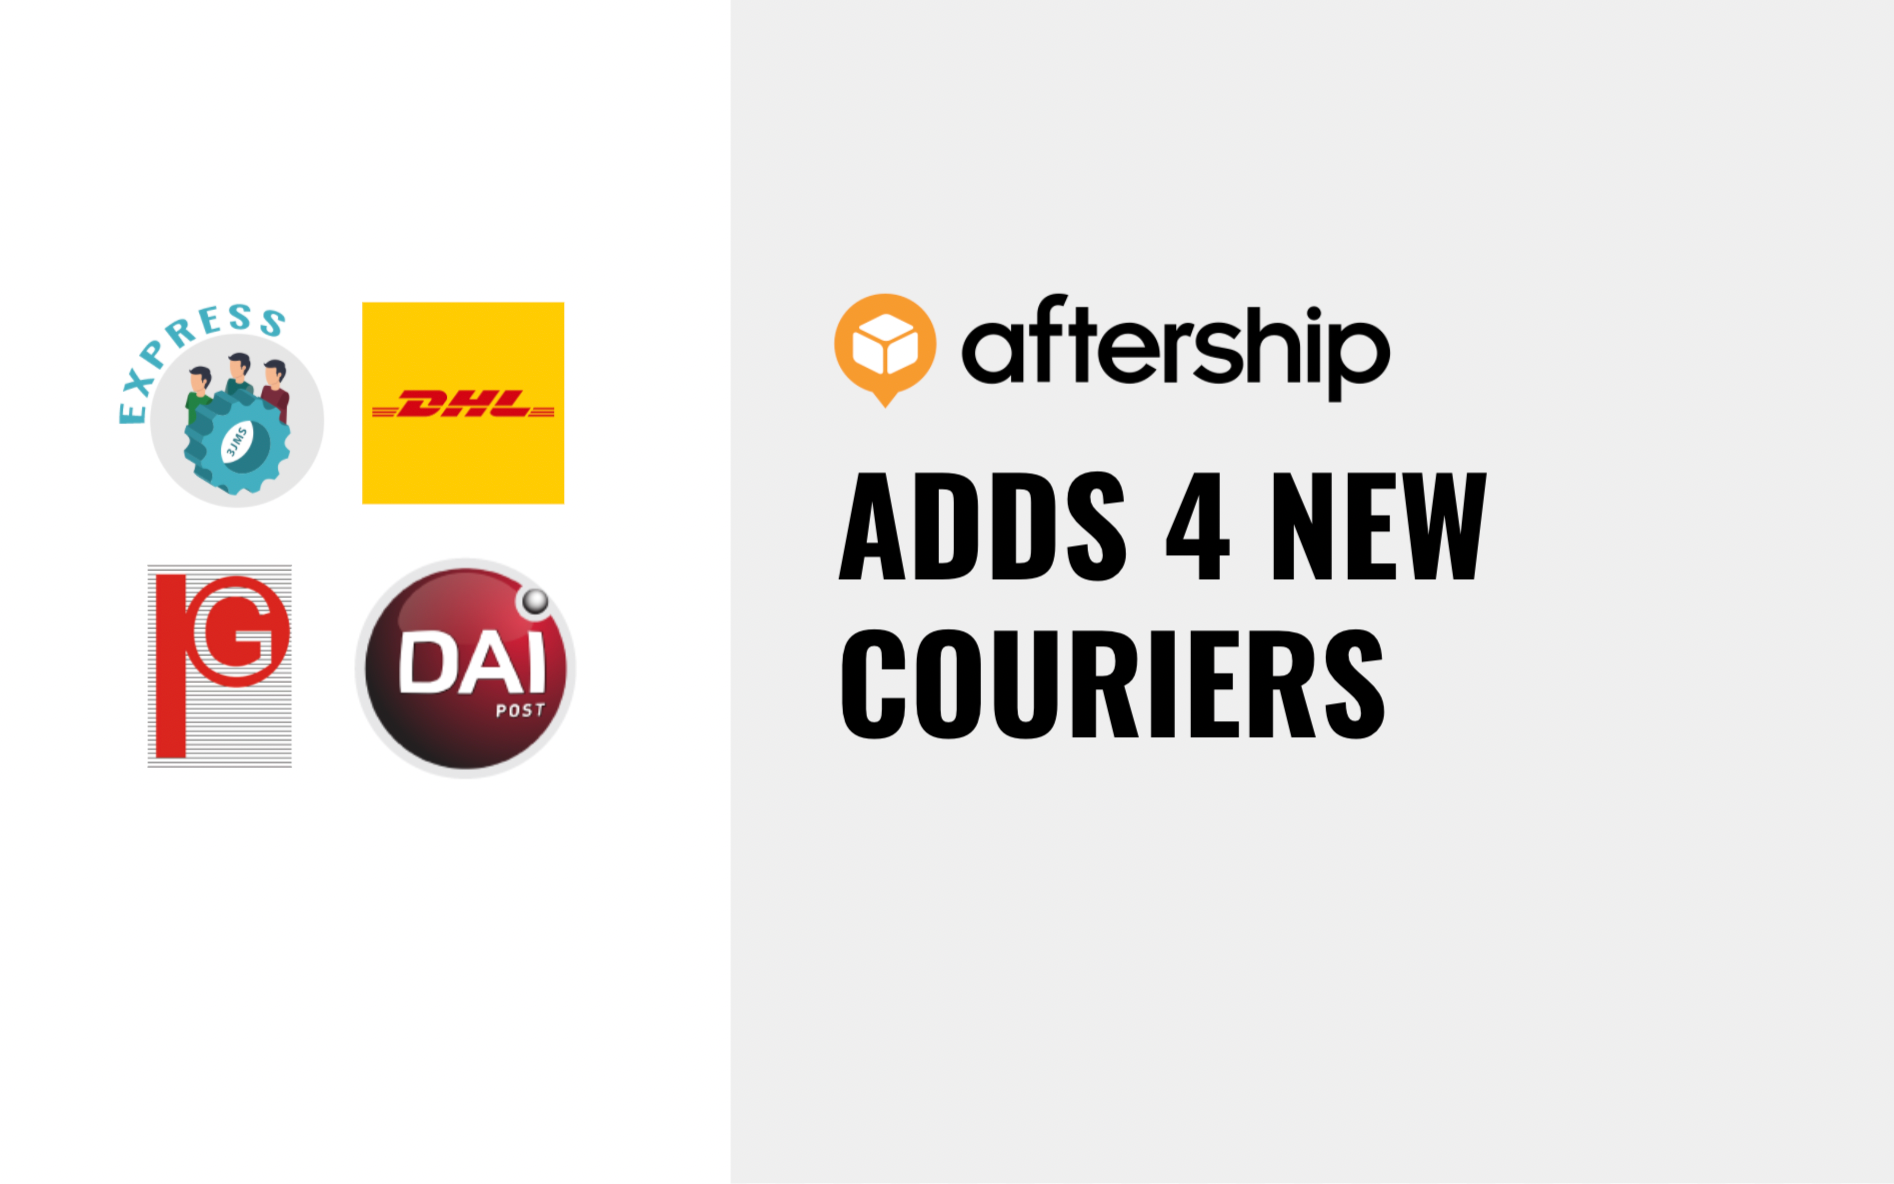 AfterShip adds 4 new couriers this week (3rd May to 14th May 2021)